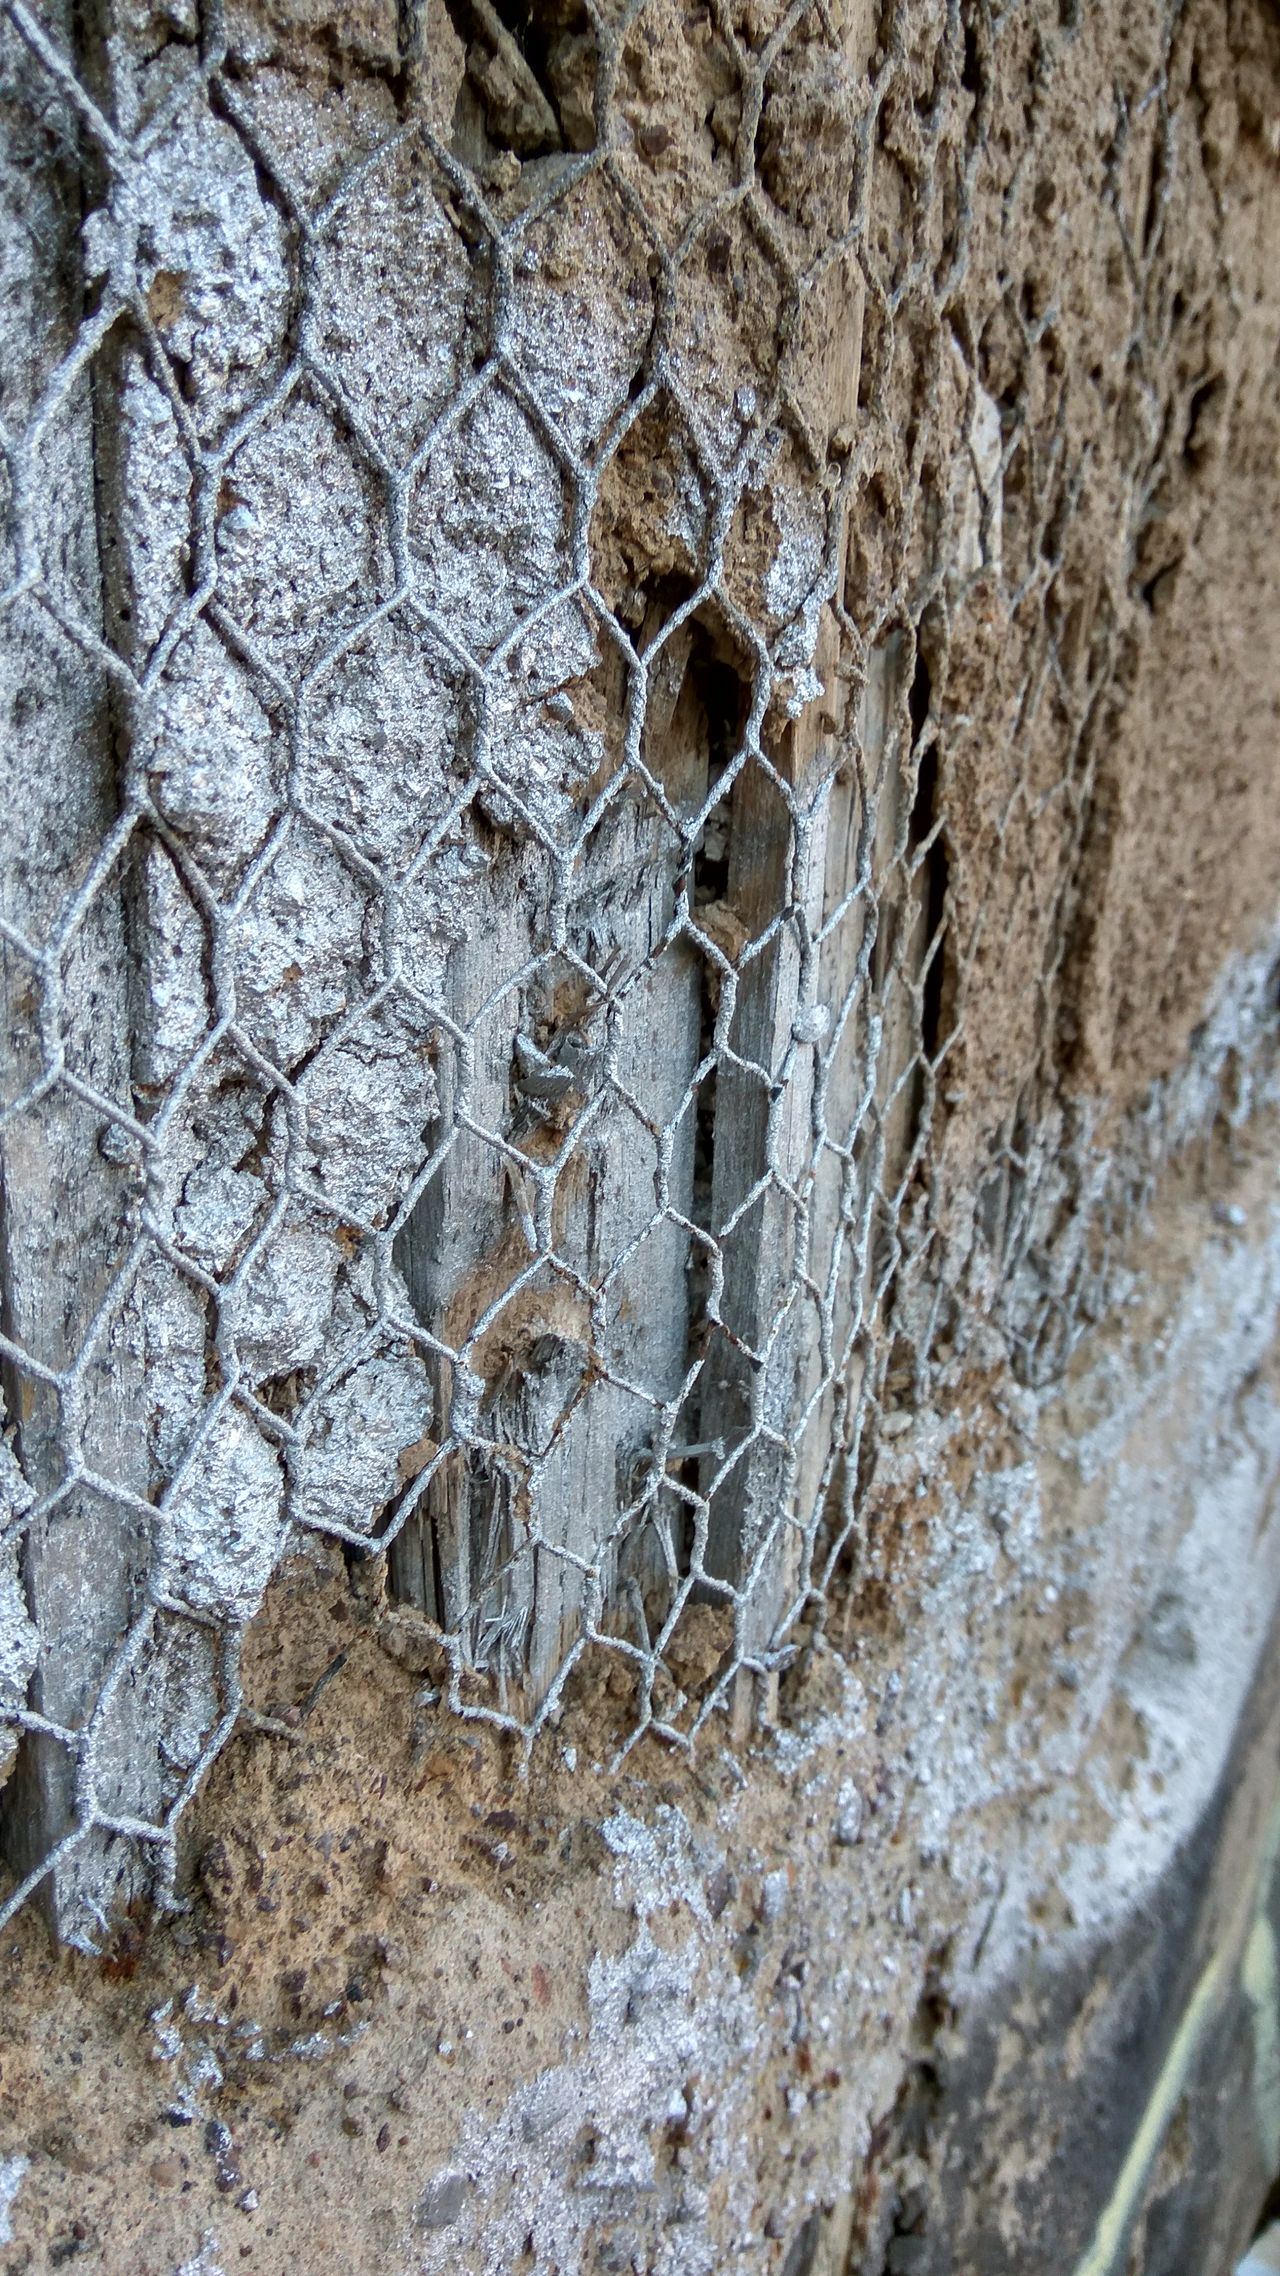 Textured  Full Frame No People Close-up Metal Day Backgrounds Outdoors Hard Stone Work Gotha EyeEmNewHere